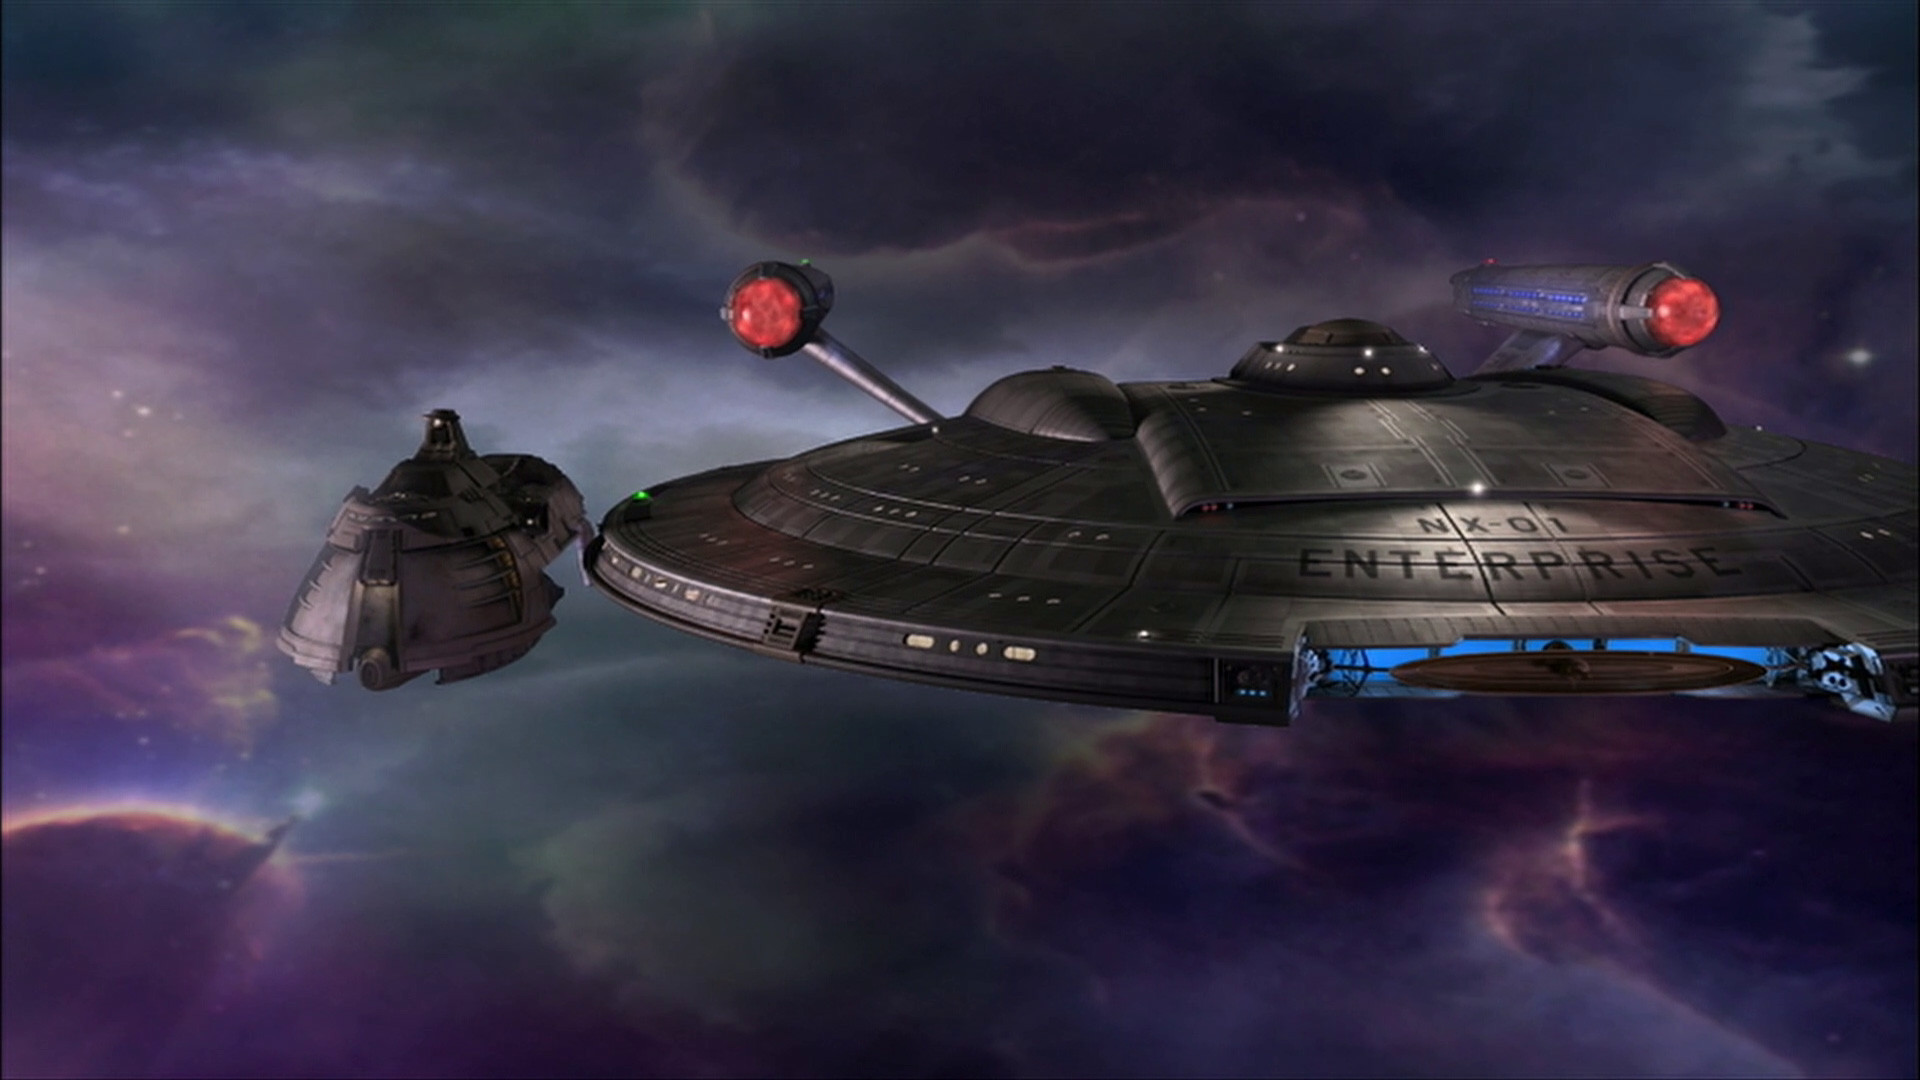 1920x1080 Star Trek: Enterprise Full HD Wallpaper